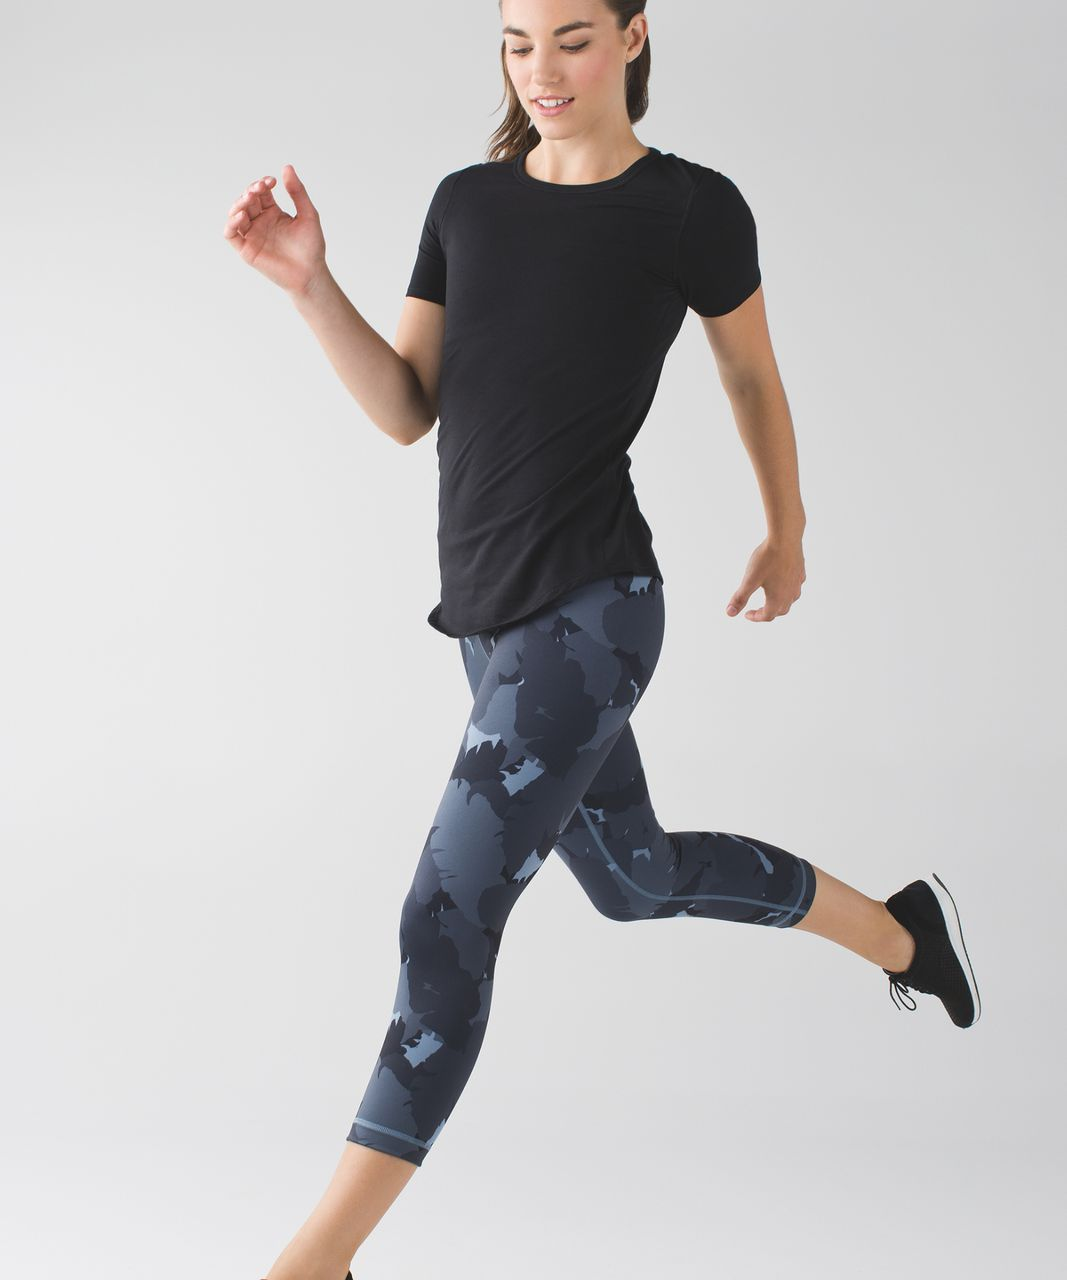 Lululemon Wunder Under Crop II *Full-On Luon - Palm Party Blue Denim Black